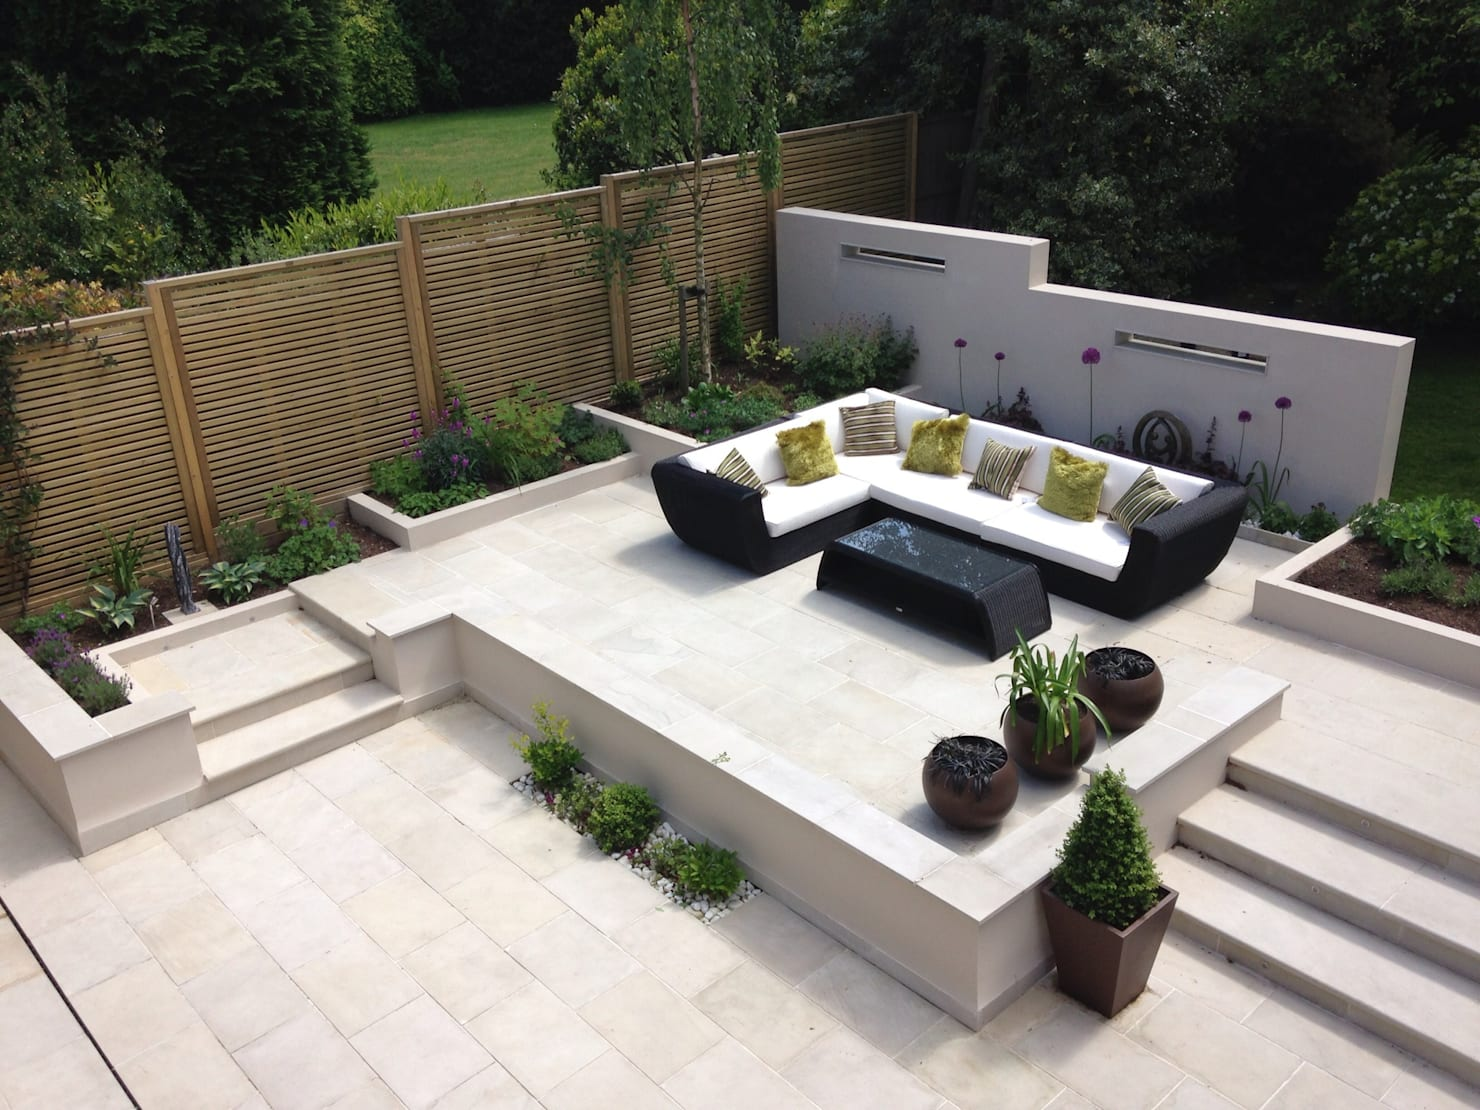 Gardening ideas for easy green space decoration